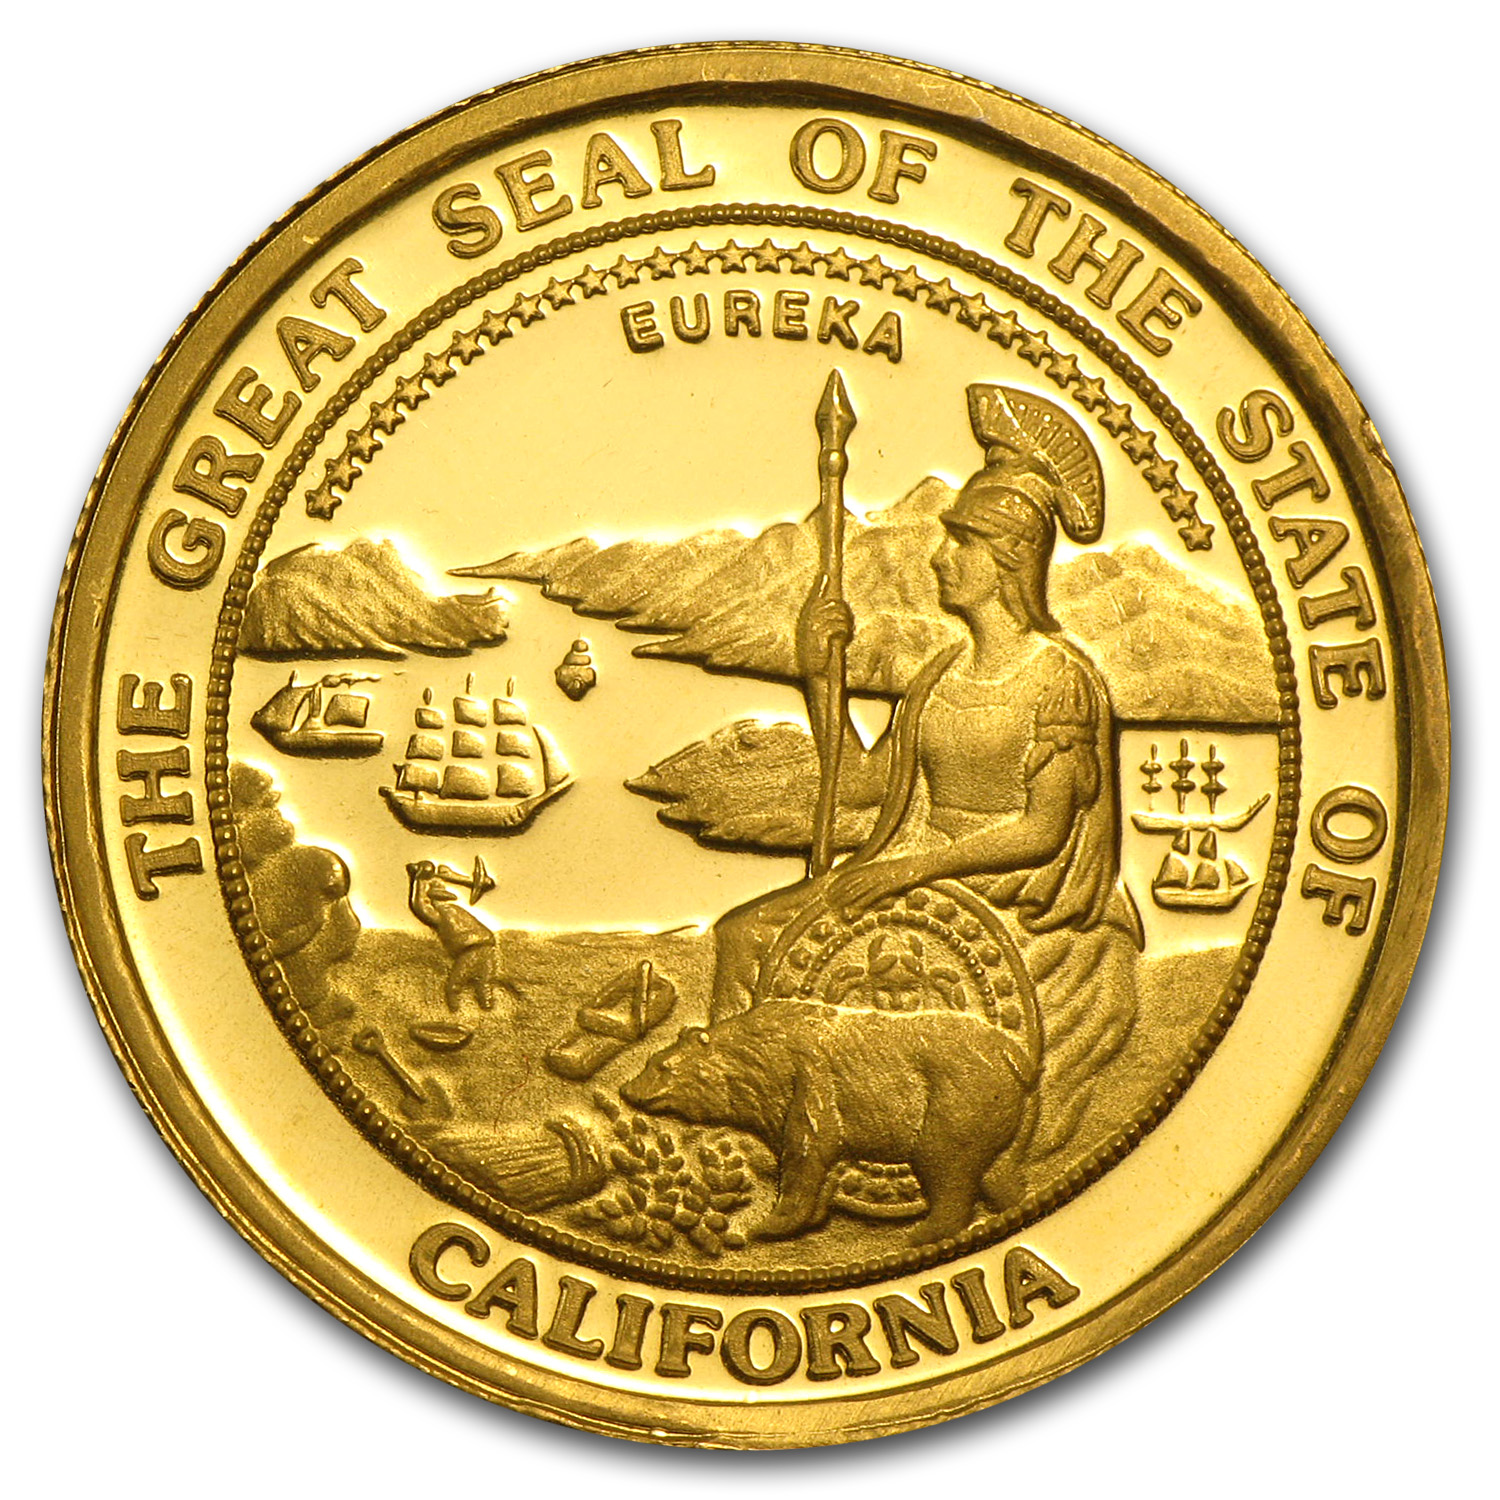 1/2 oz Gold Rounds - Great Seal of California